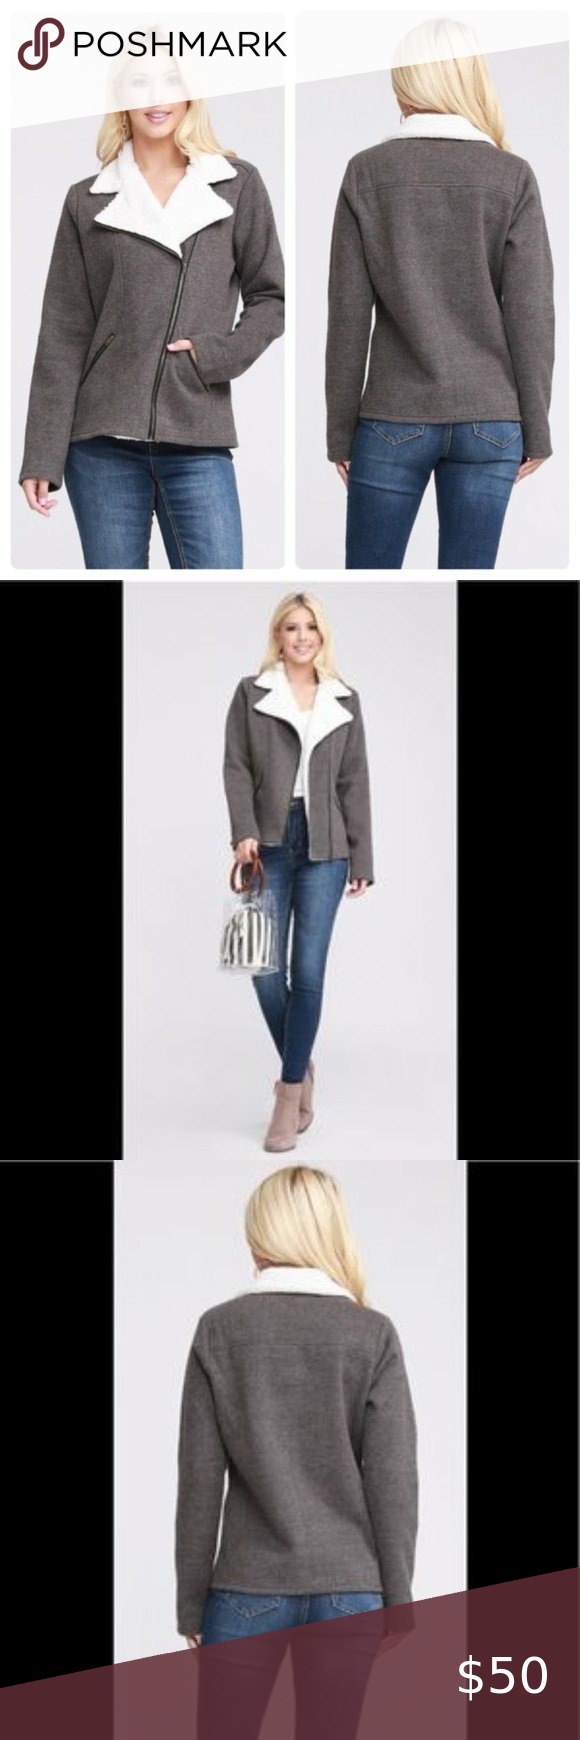 Sherpa Lined Moto Jacket with Asymmetric Zip. New! in 2020